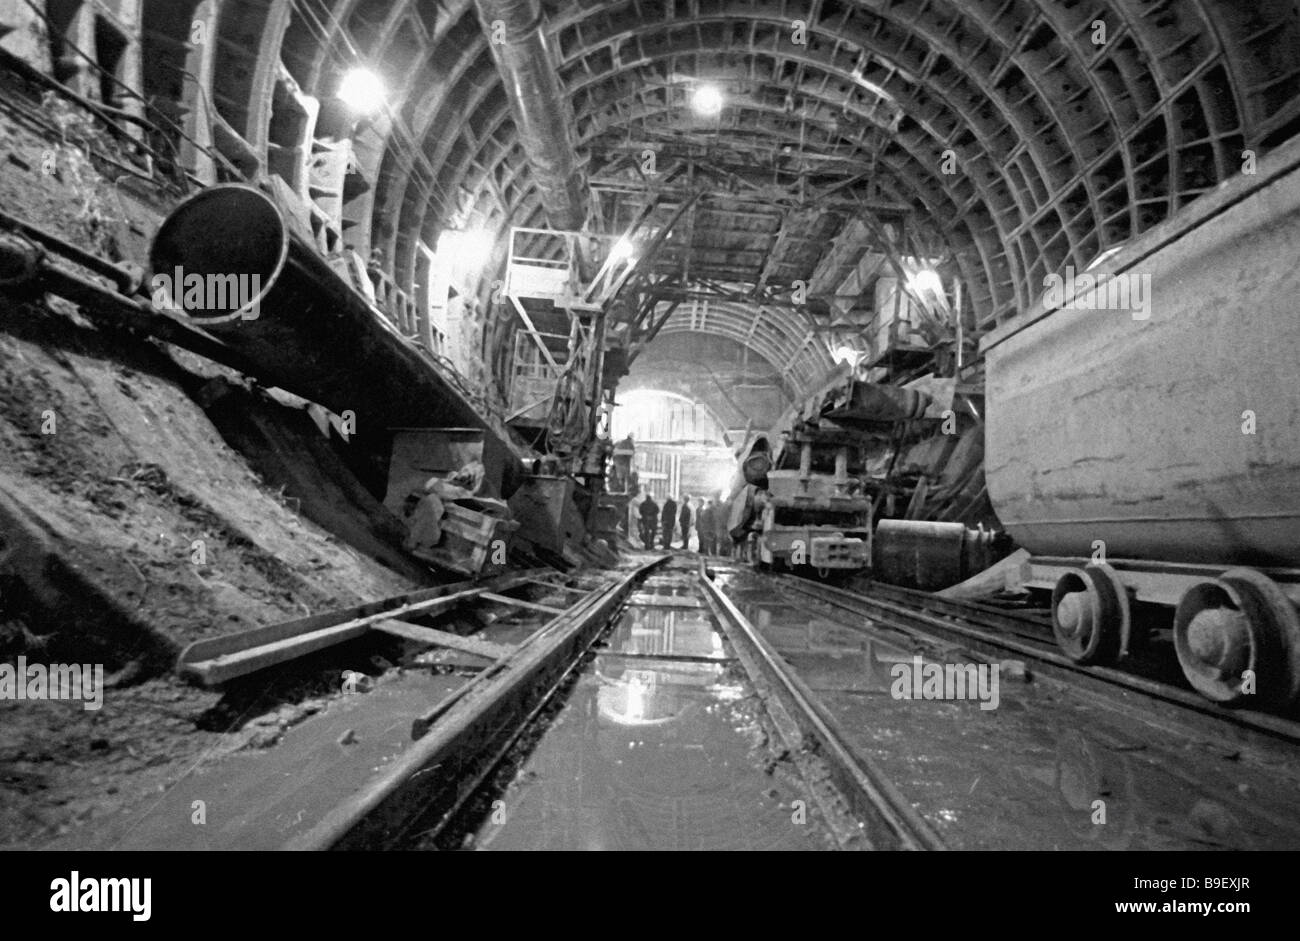 During the construction of the Moscow metro, mortality and injuries decreased by 30 percent 73